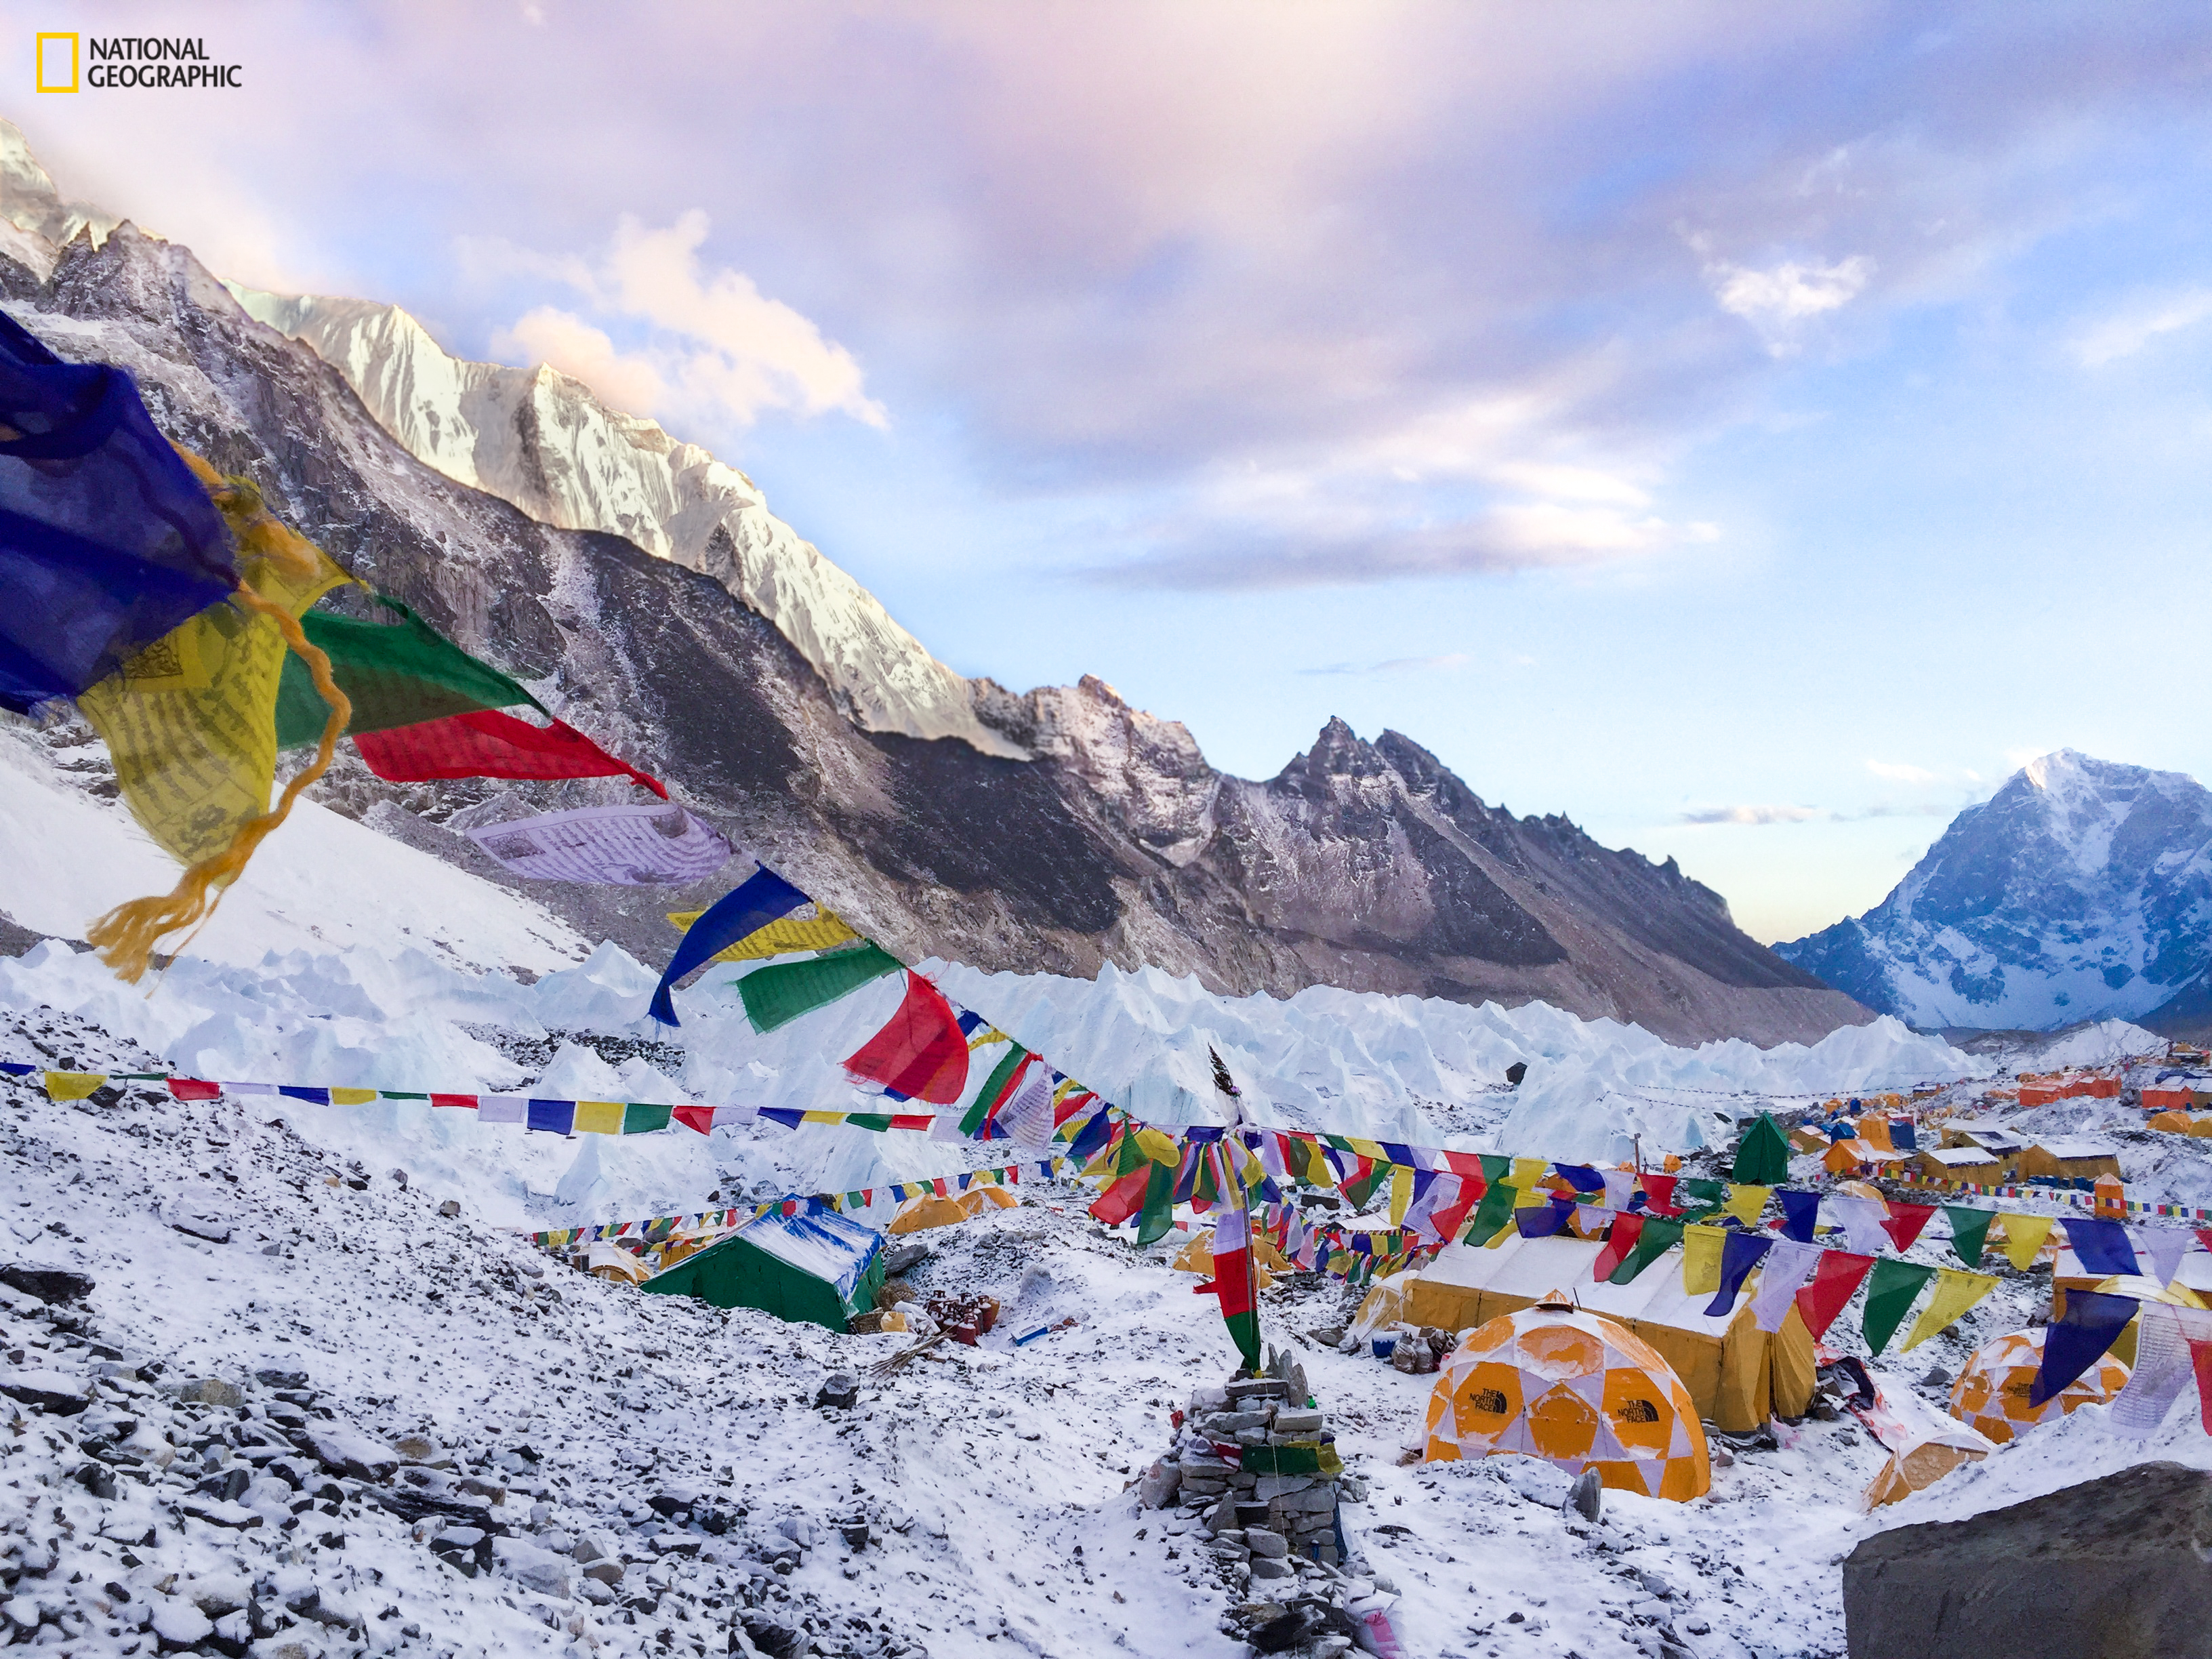 A snowy rocky landscape dotted with small tents and rows of colorful Nepalese prayer flags strung between them